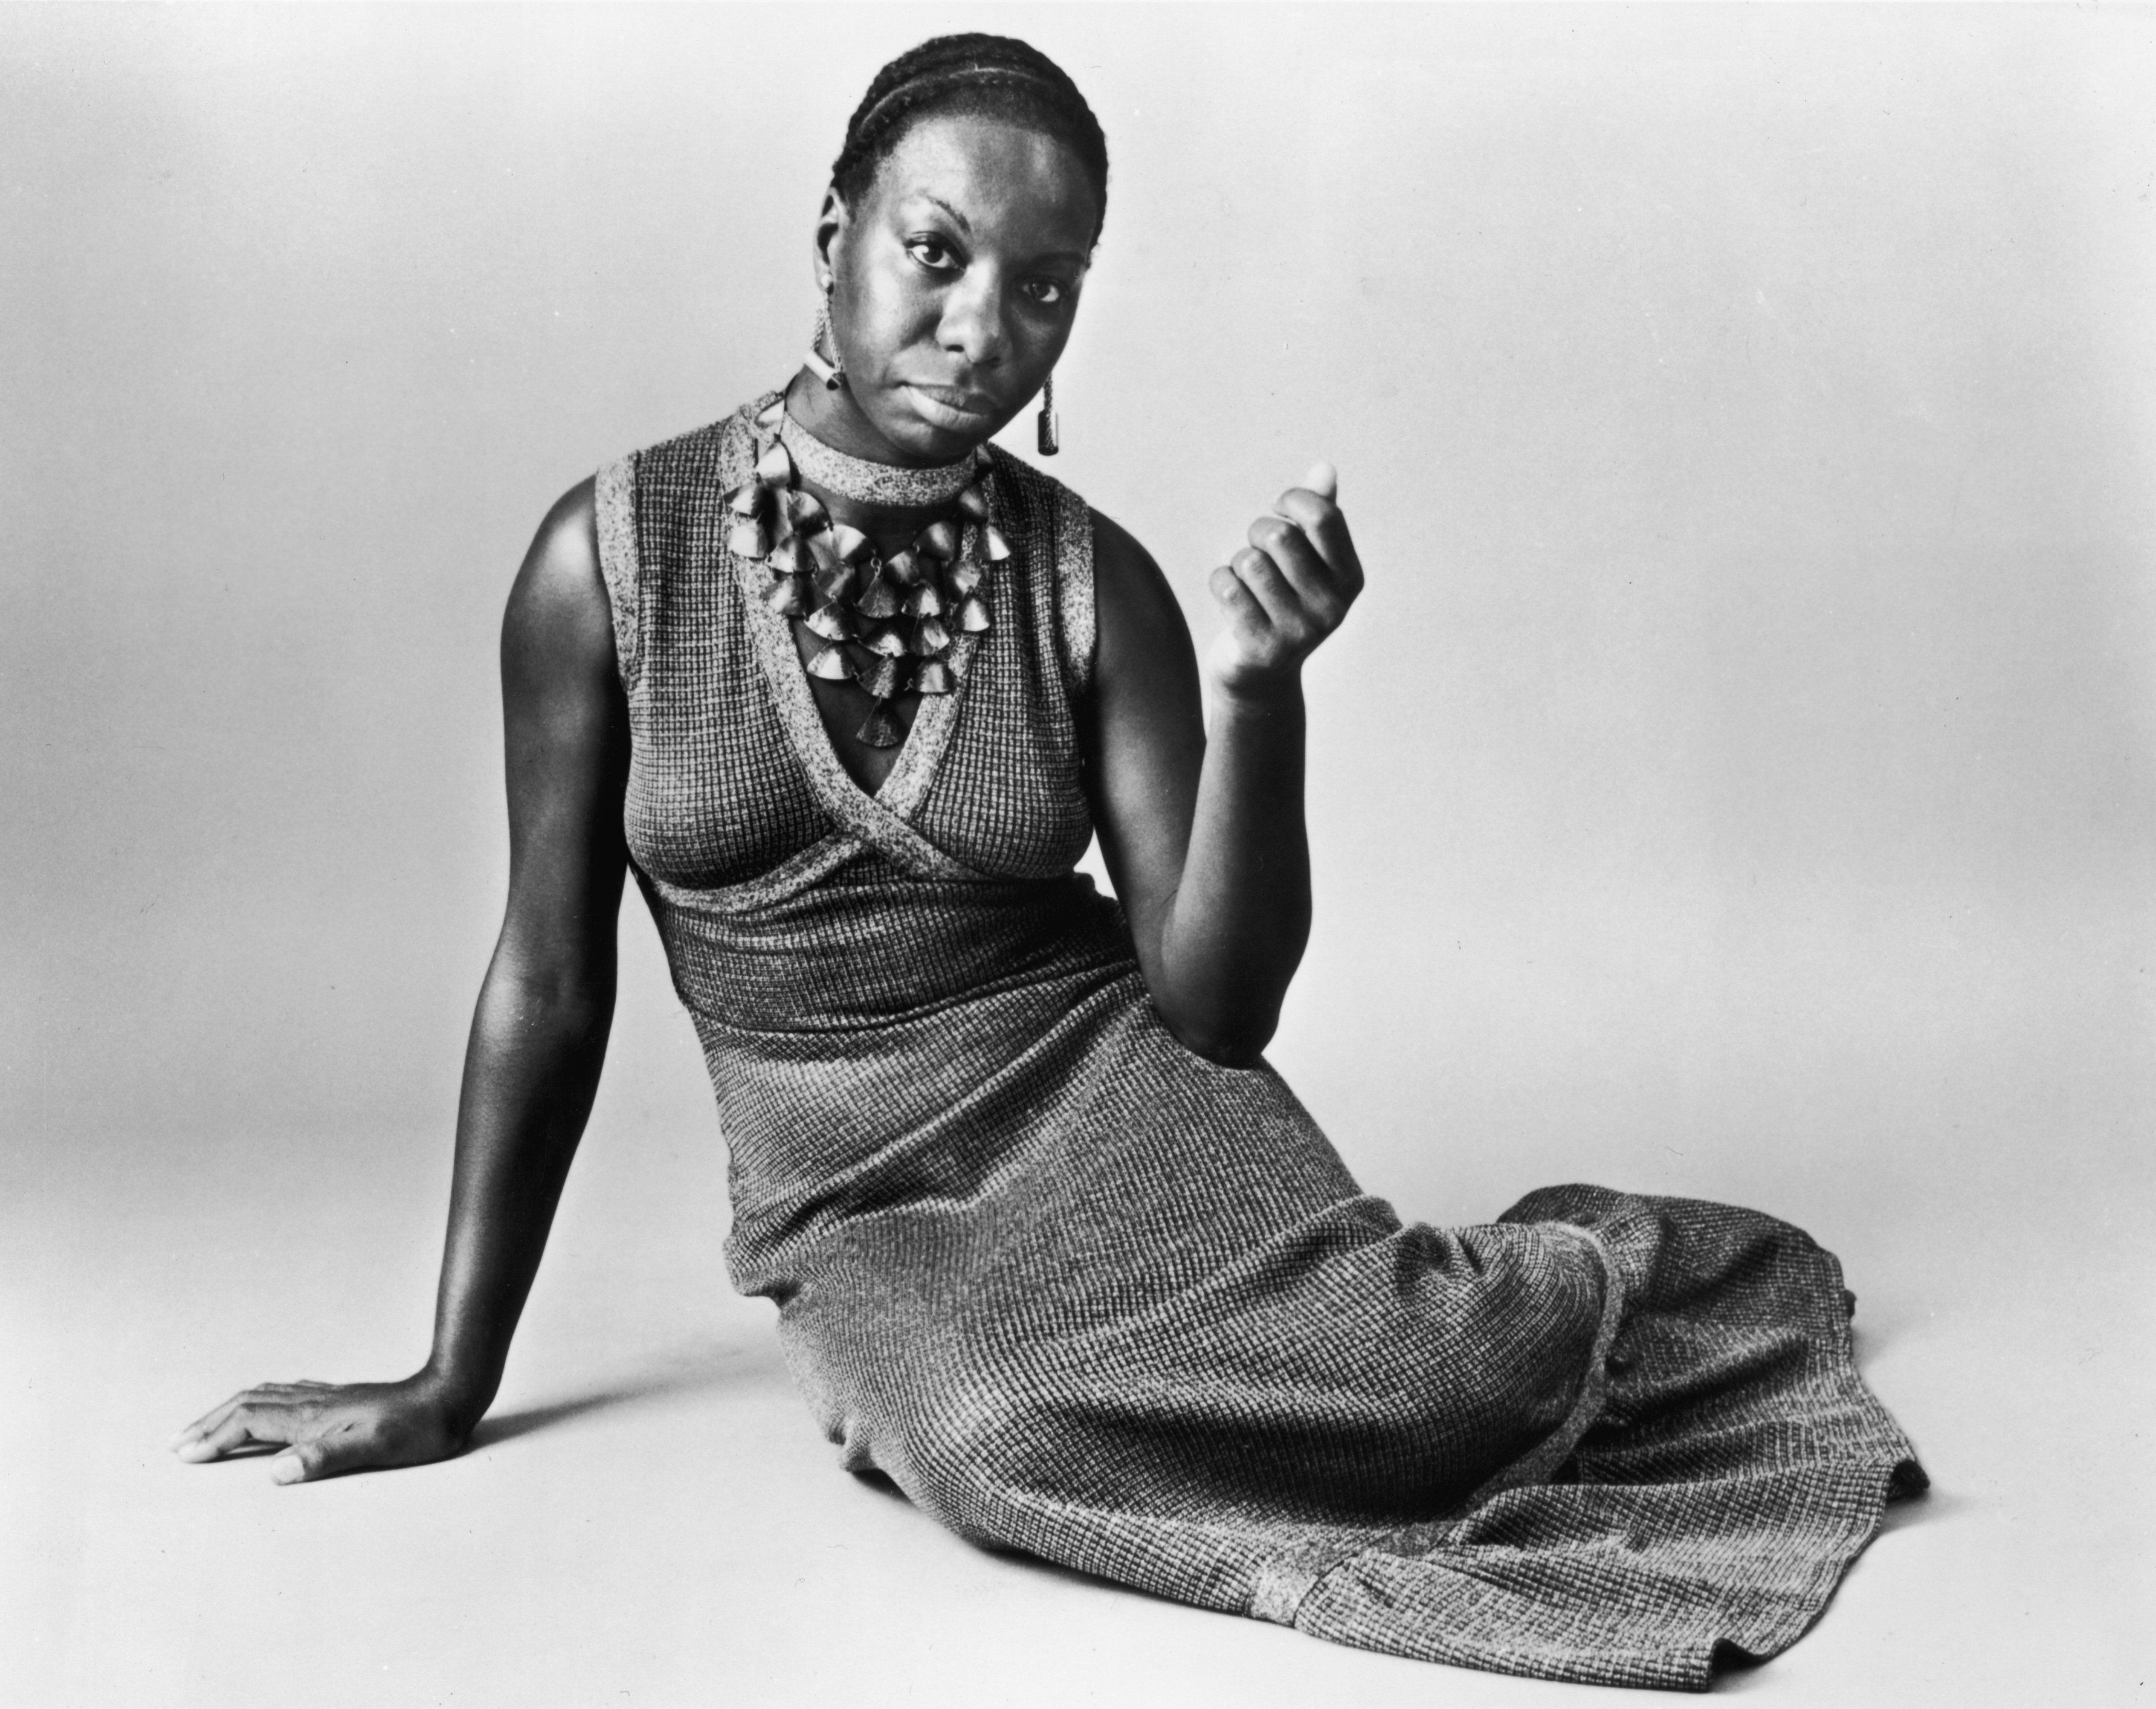 circa 1968:  Studio portrait of American pianist and jazz singer Nina Simone (1933 - 2003) reclining on the floor while wearing a sleeveless, V-neck dress with a shell neckpiece.  (Photo by Hulton Archive/Getty Images)